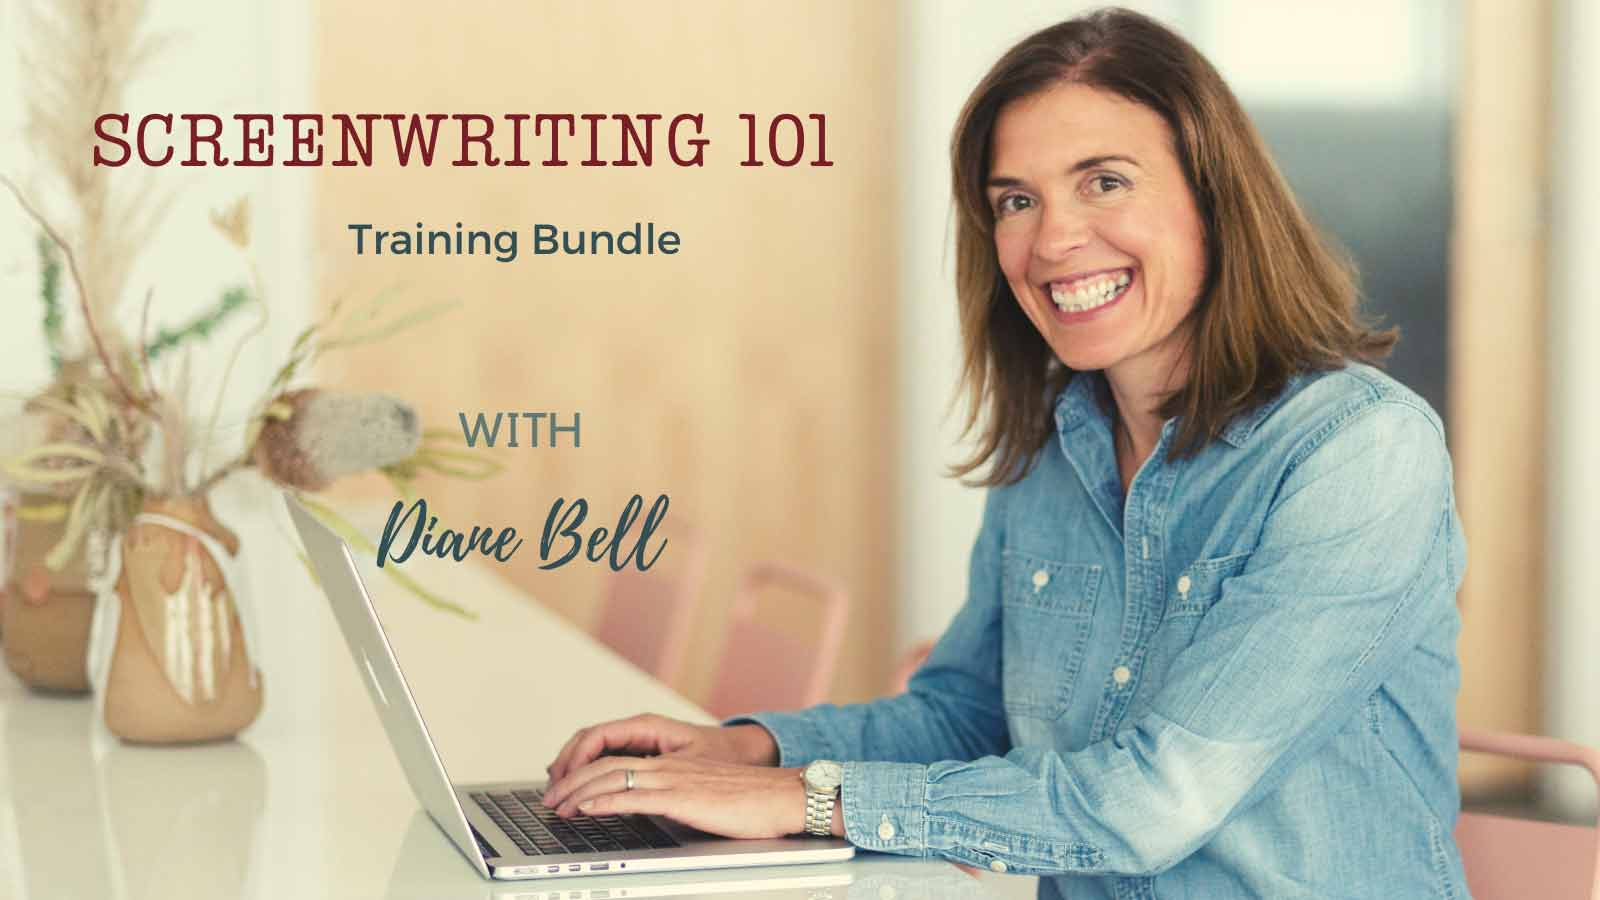 Image for Screenwriting 101 Training Bundle